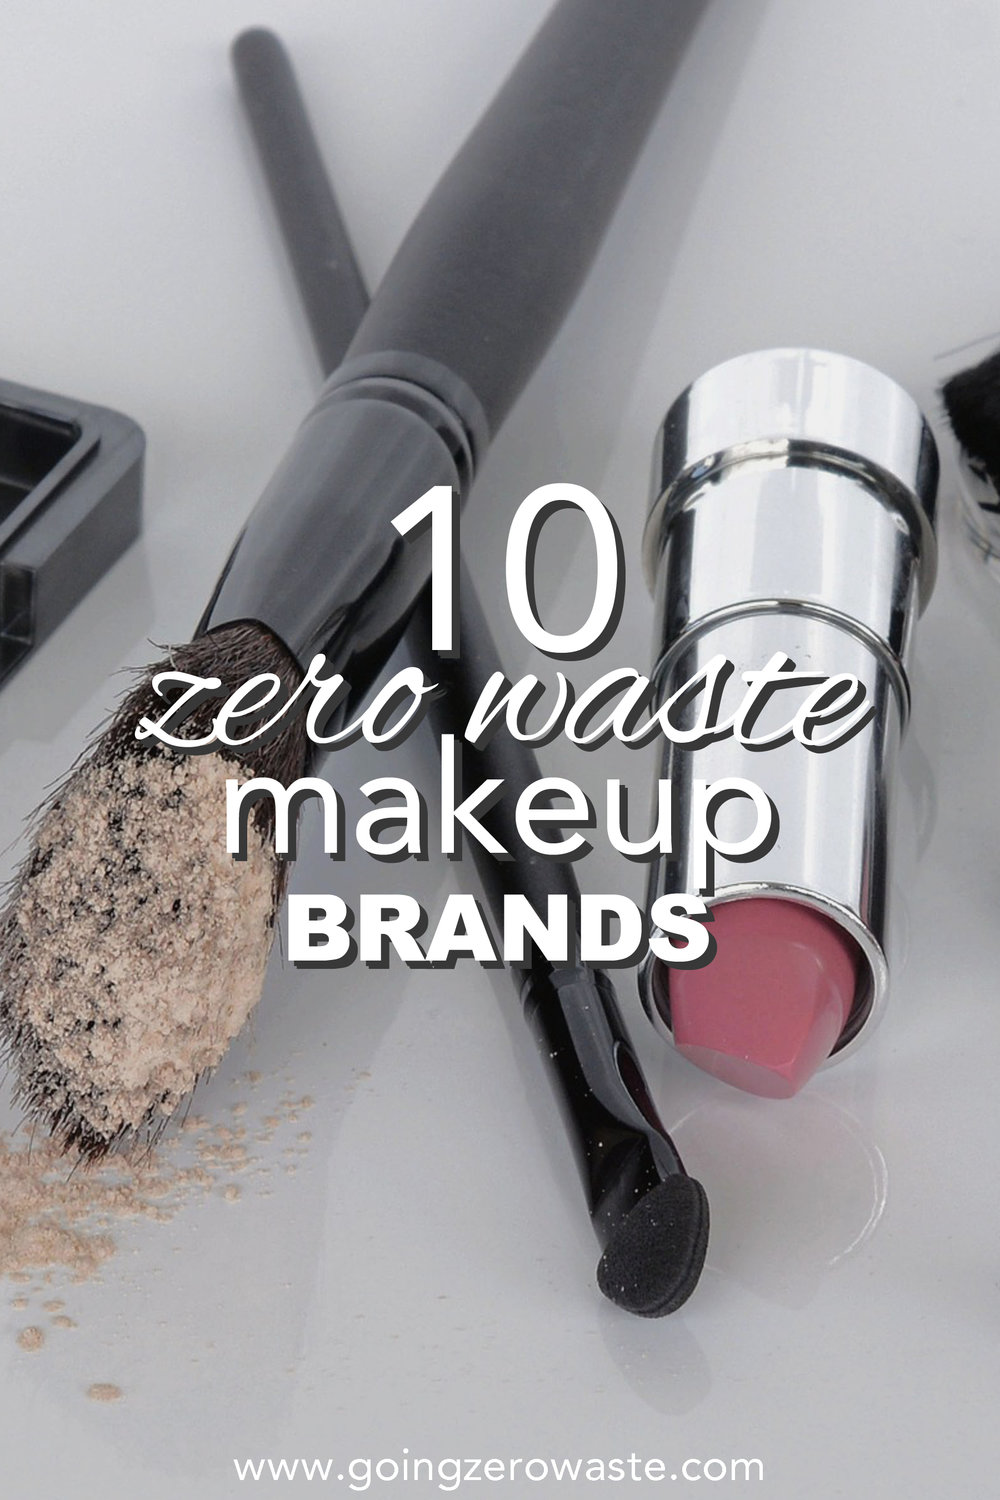 10 zero waste makeup brands from www.goingzerowaste.com